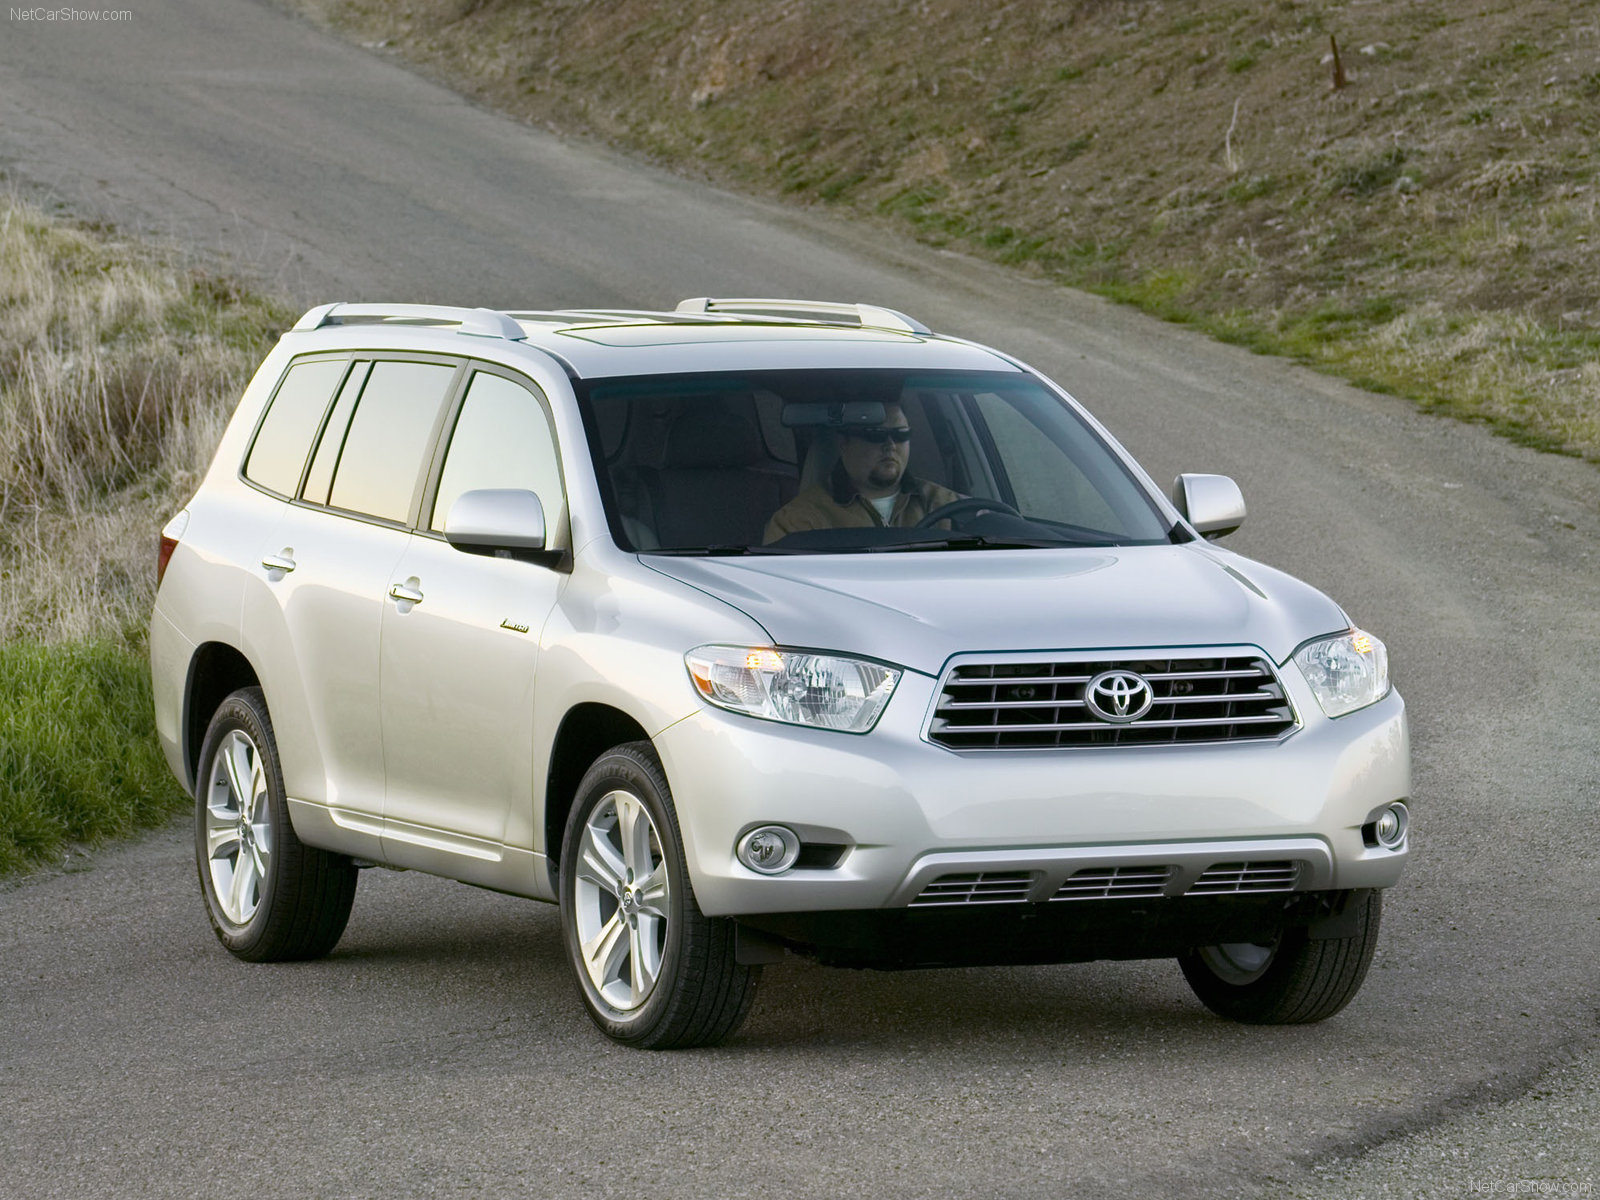 Toyota Highlander Picture 41622 Toyota Photo Gallery